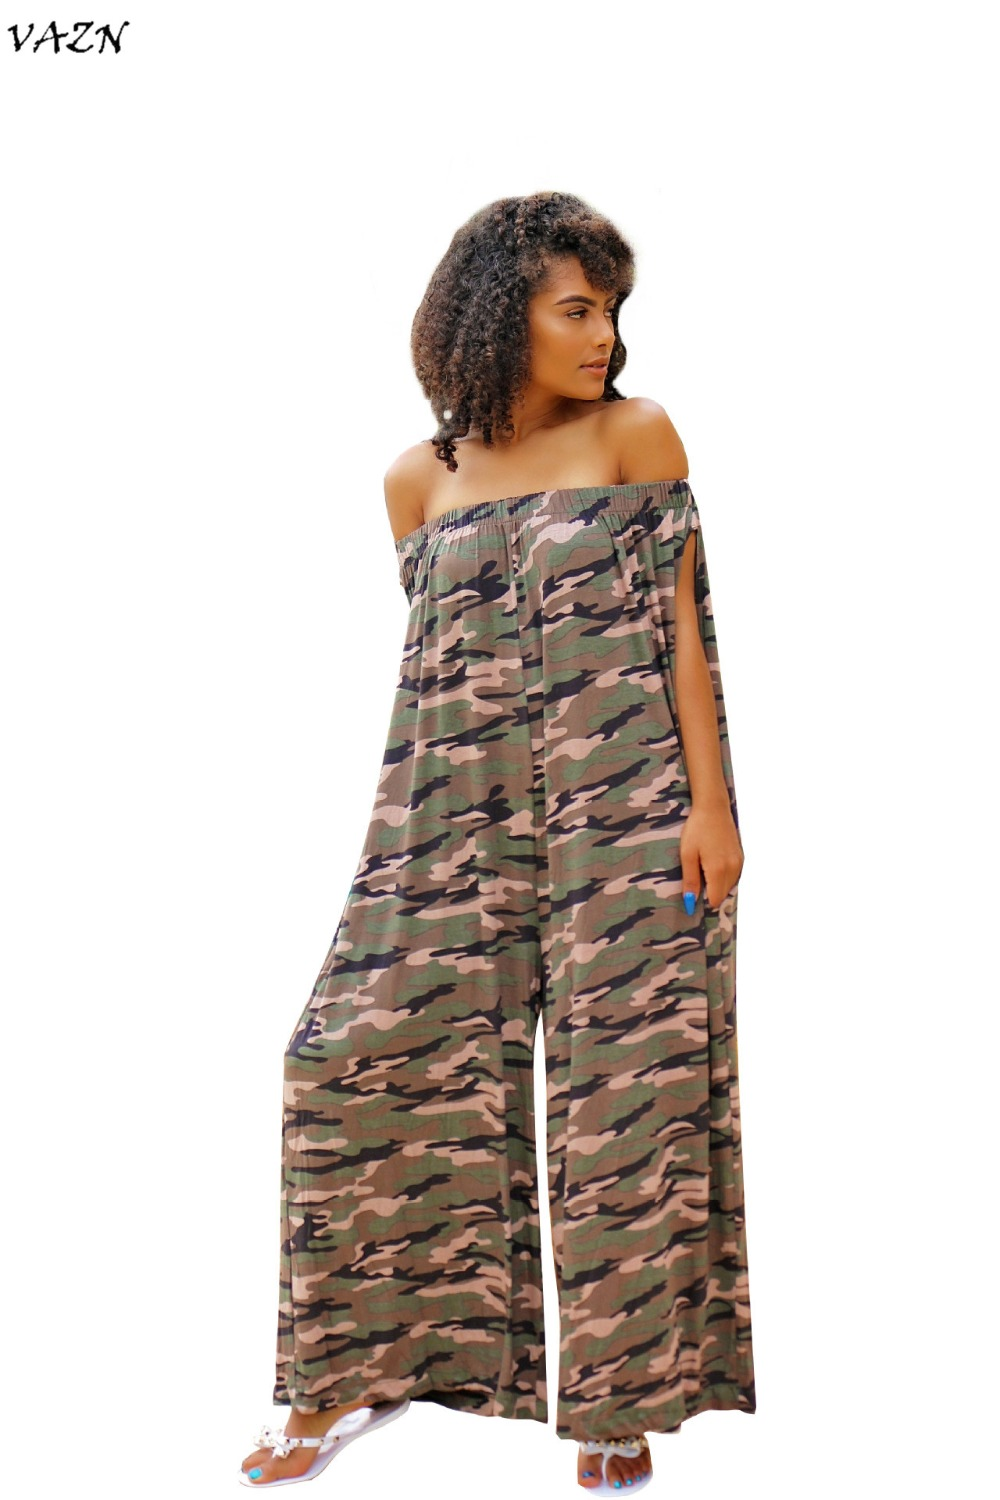 VAZN New Arrive Best Quality 2018 Sexy Night Club Women Long Jumpsuit Camouflage Slash Neck Shor Sleeve Loose Romper J1544